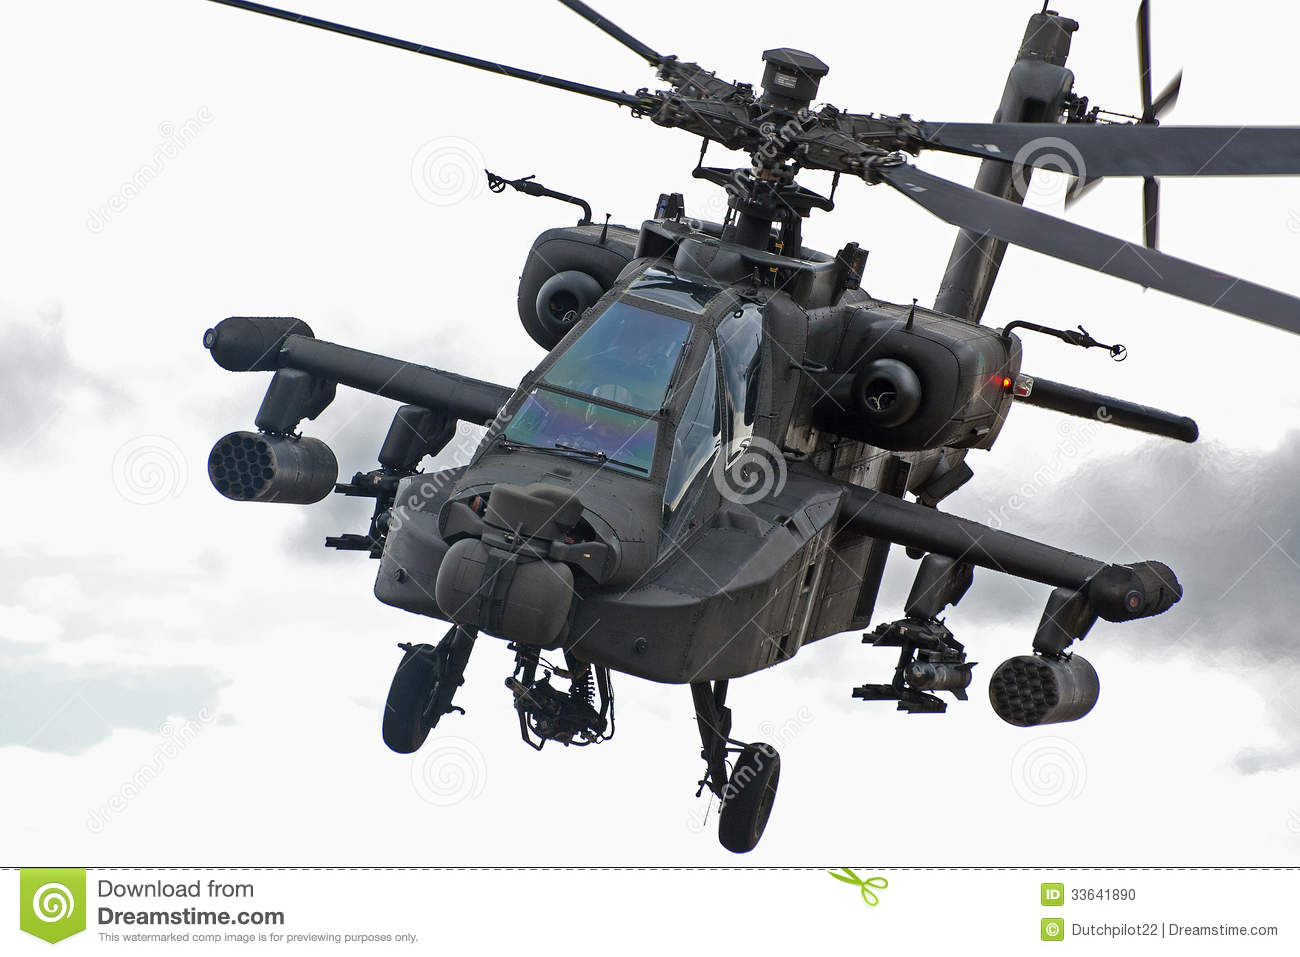 army helicopter toy with Stock Photo Apache Helicopter Looking Straight Camera Image33641890 on Mil Mi 24 Hind further VintageProcessedPlasticTimMeeGIJoeArmyJeepsTanksAircraftMen furthermore Sikorsky S 92 together with Modular Landscaping And Brickfair also News2007.